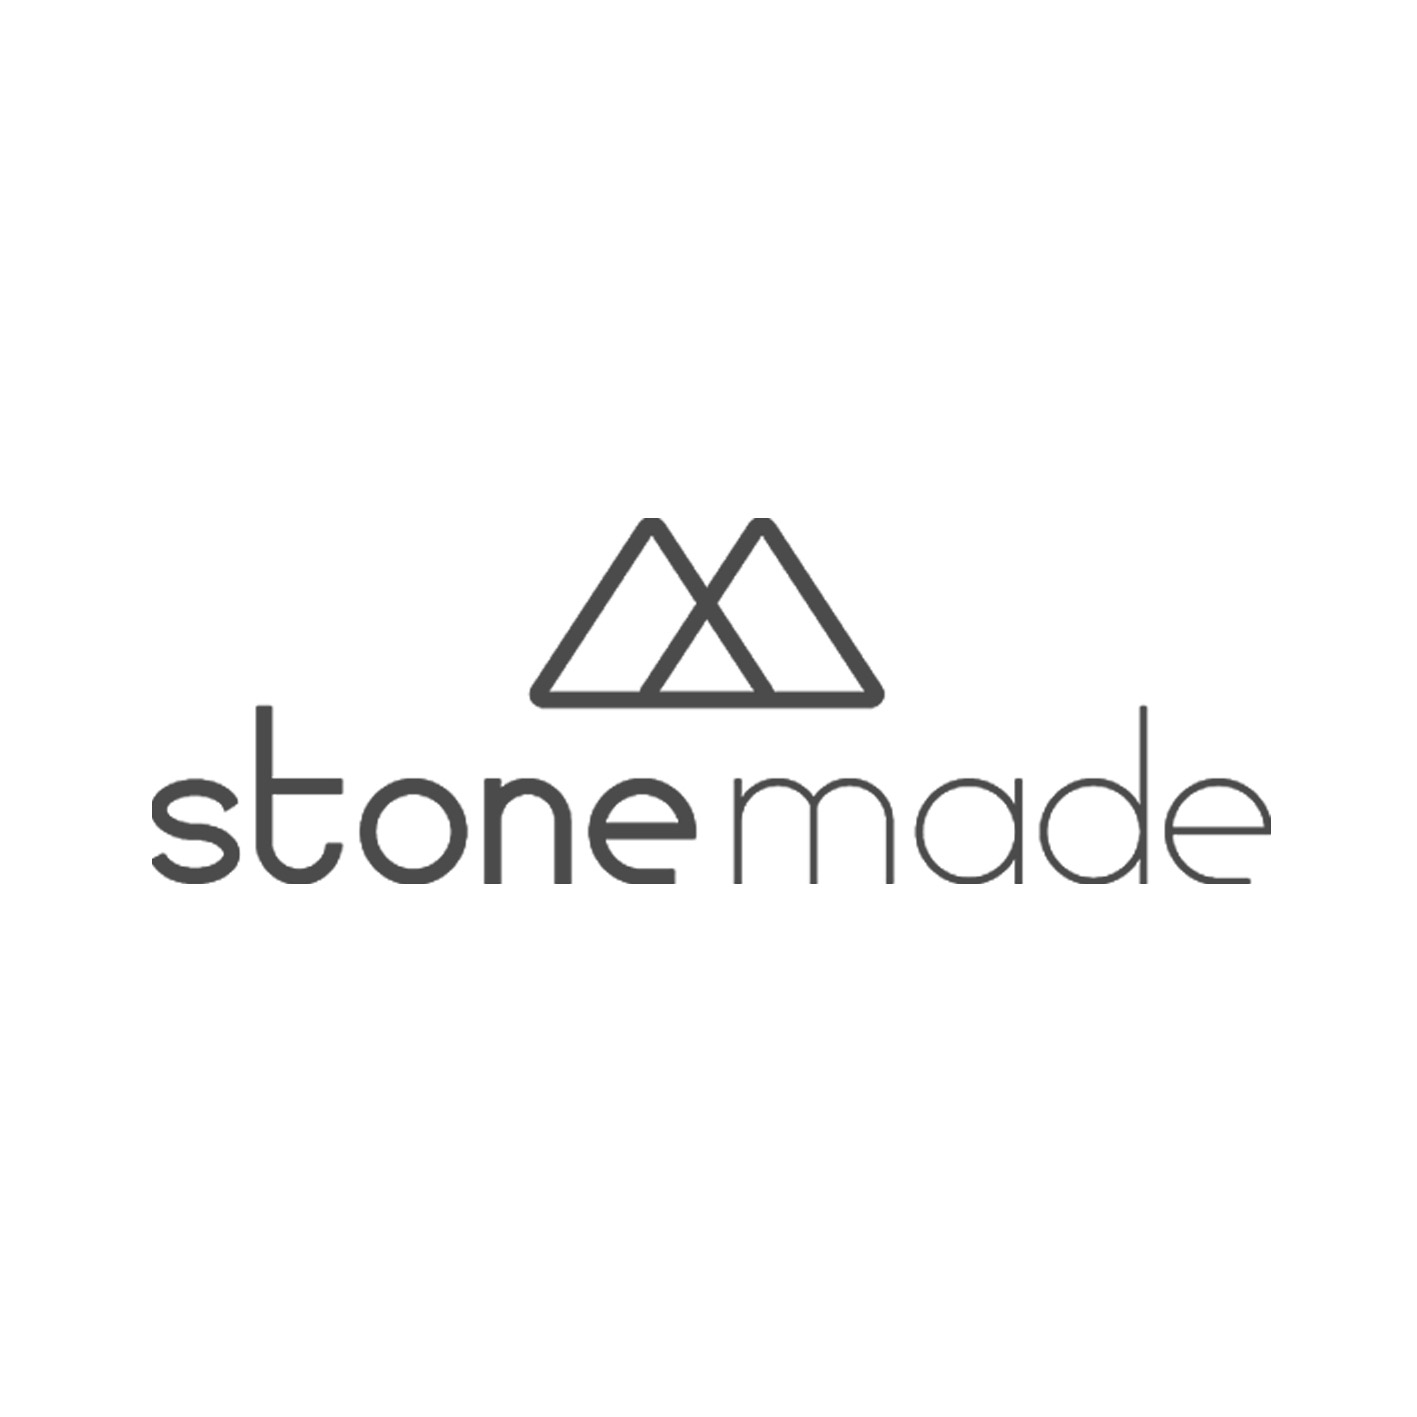 Stone Made